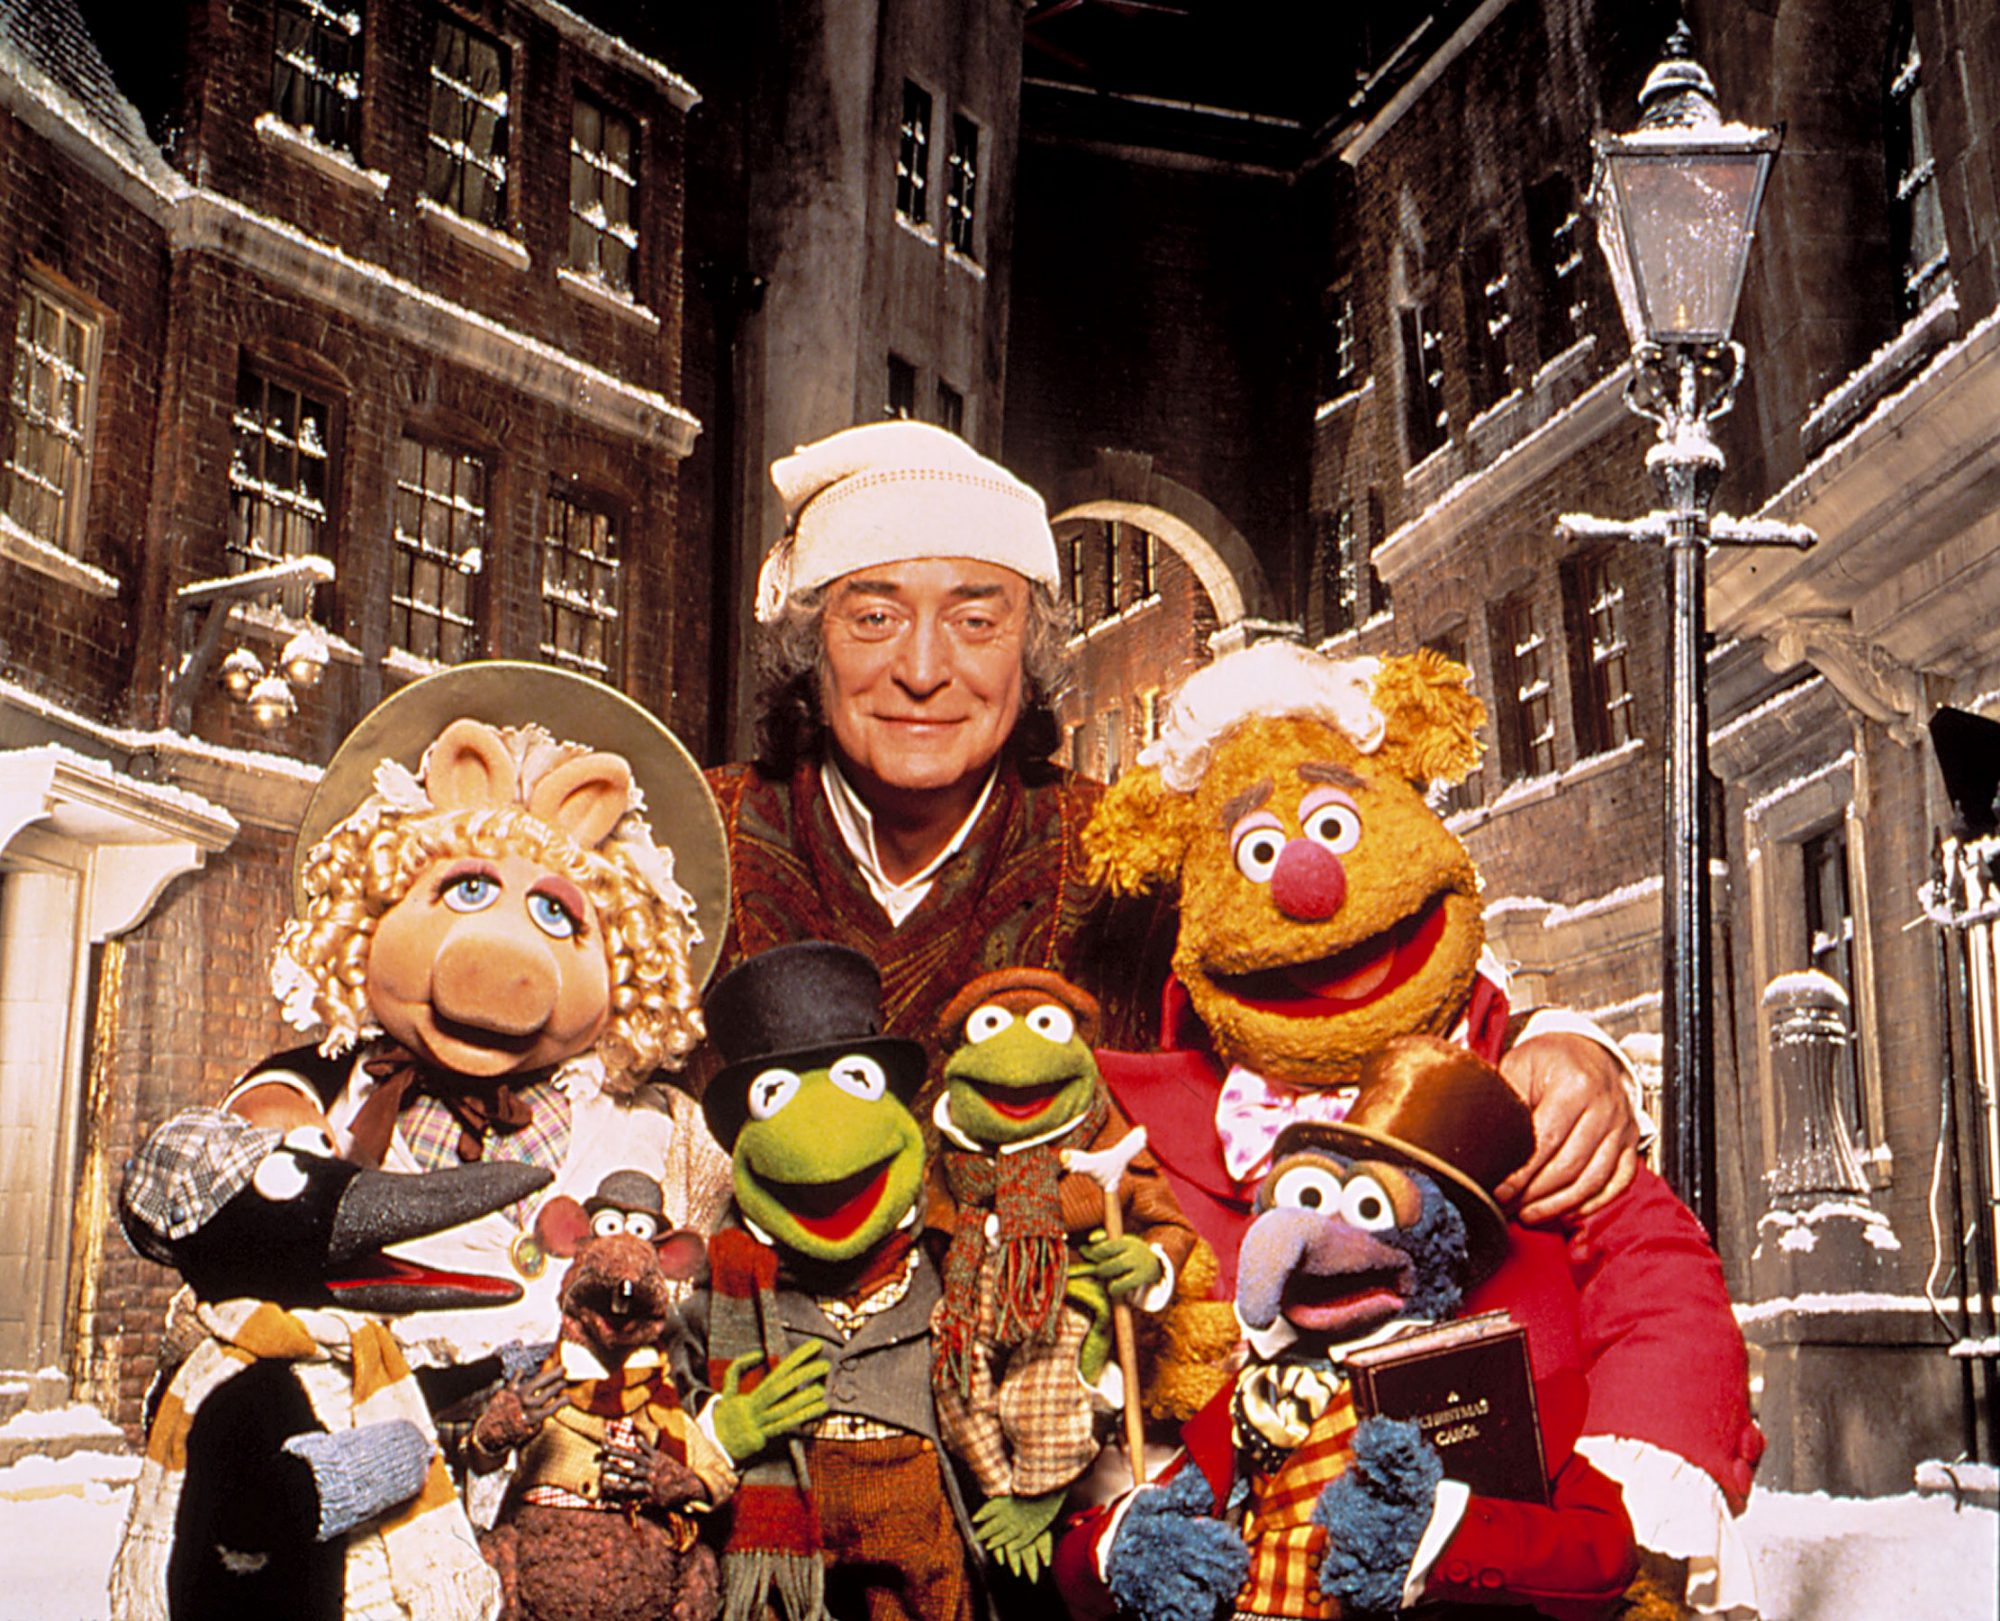 8. The Muppet Christmas Carol (1992)